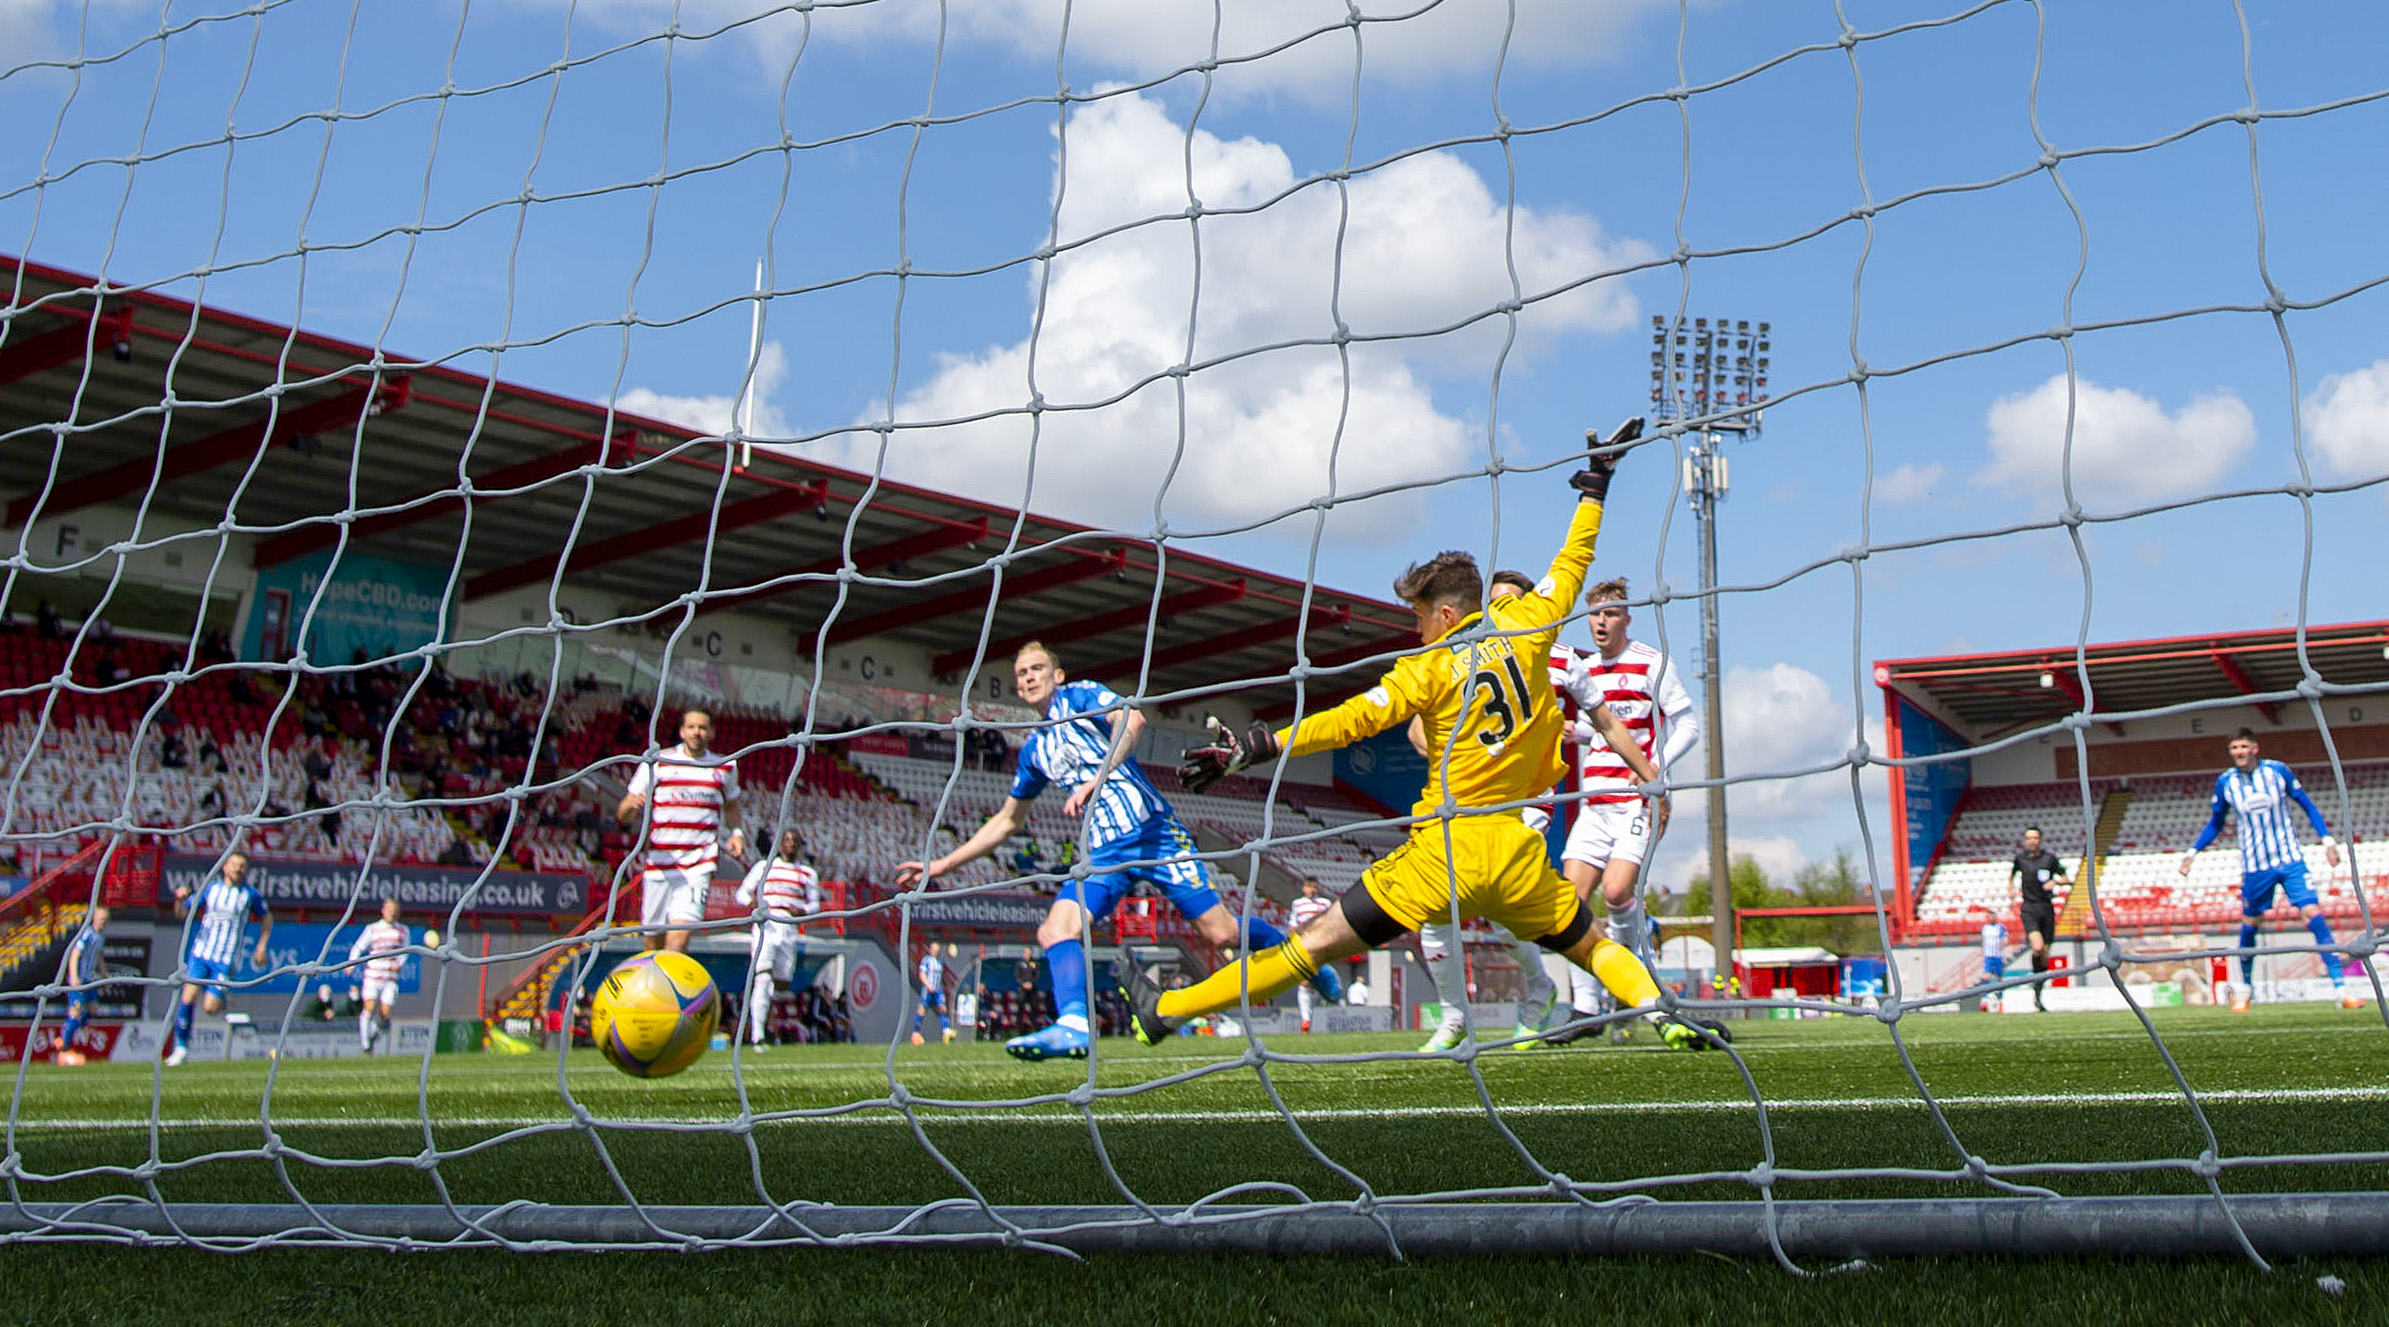 Hamilton 0-2 Kilmarnock: Accies sent down with Killie condemned to play-off